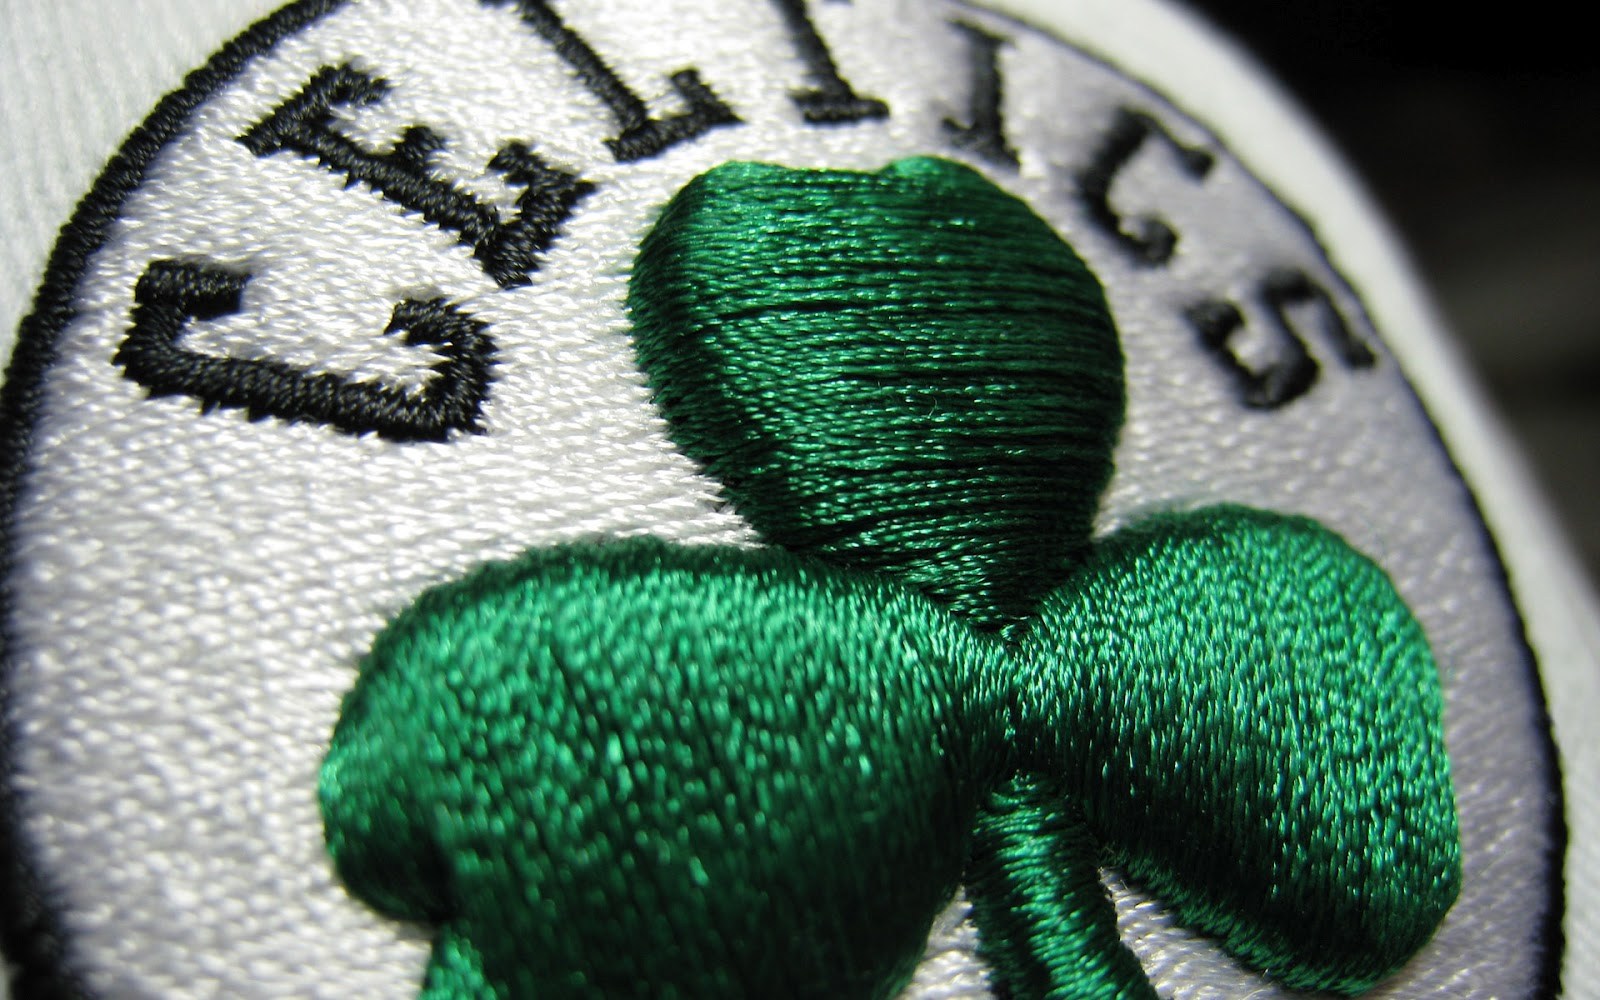 http://4.bp.blogspot.com/-bC4cJN7bYRo/T9CZ15olE9I/AAAAAAAAB_4/WnKF9BWadXk/s1600/Boston_Celtics_Logo_NBA_Close_Up_HD_Desktop_Wallpaper-hidefwall.blogspot.com.jpg